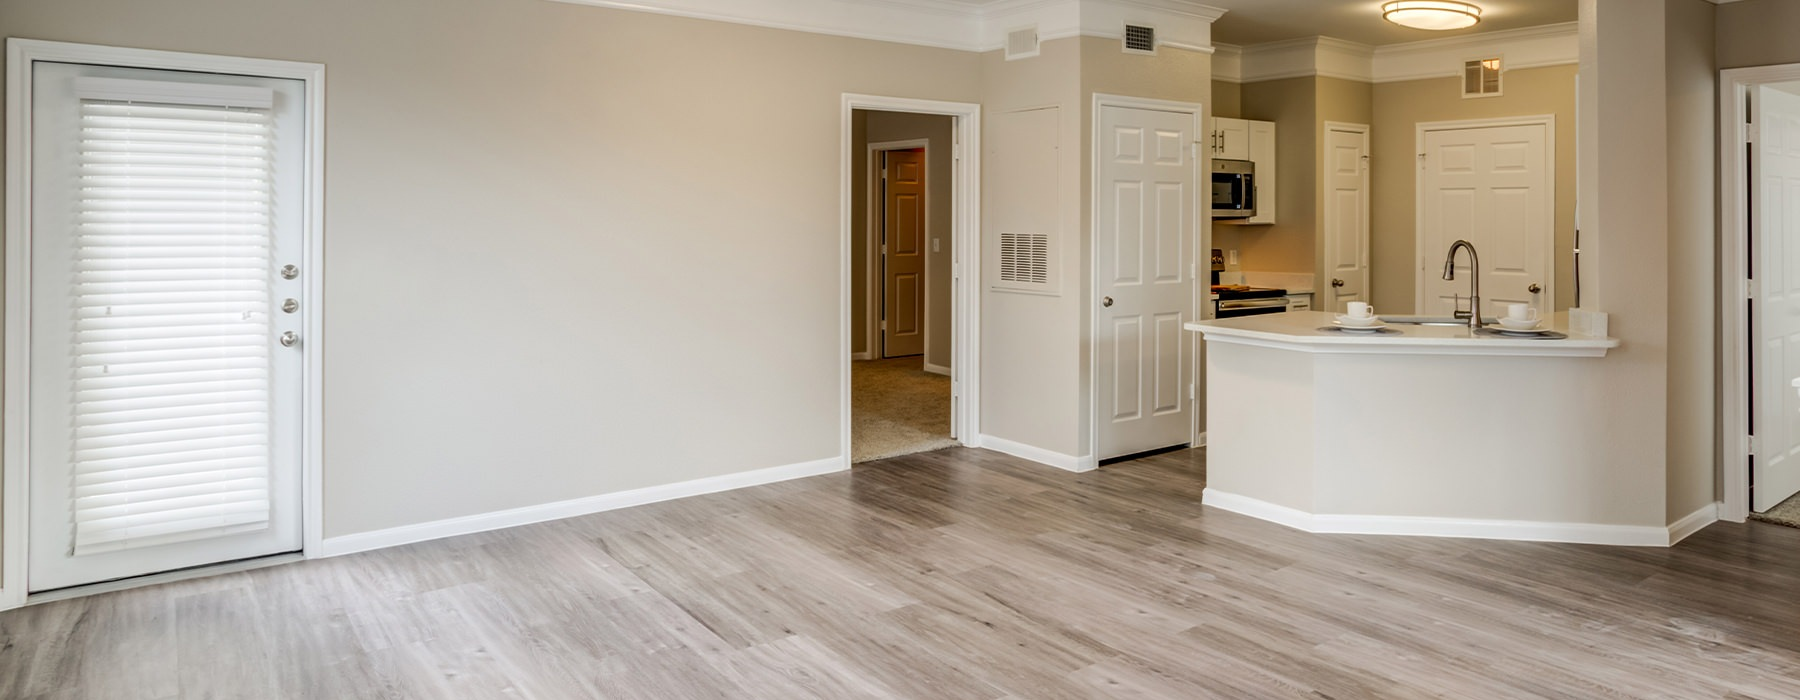 Spacious living space with open floor plan and access to the kitchen.